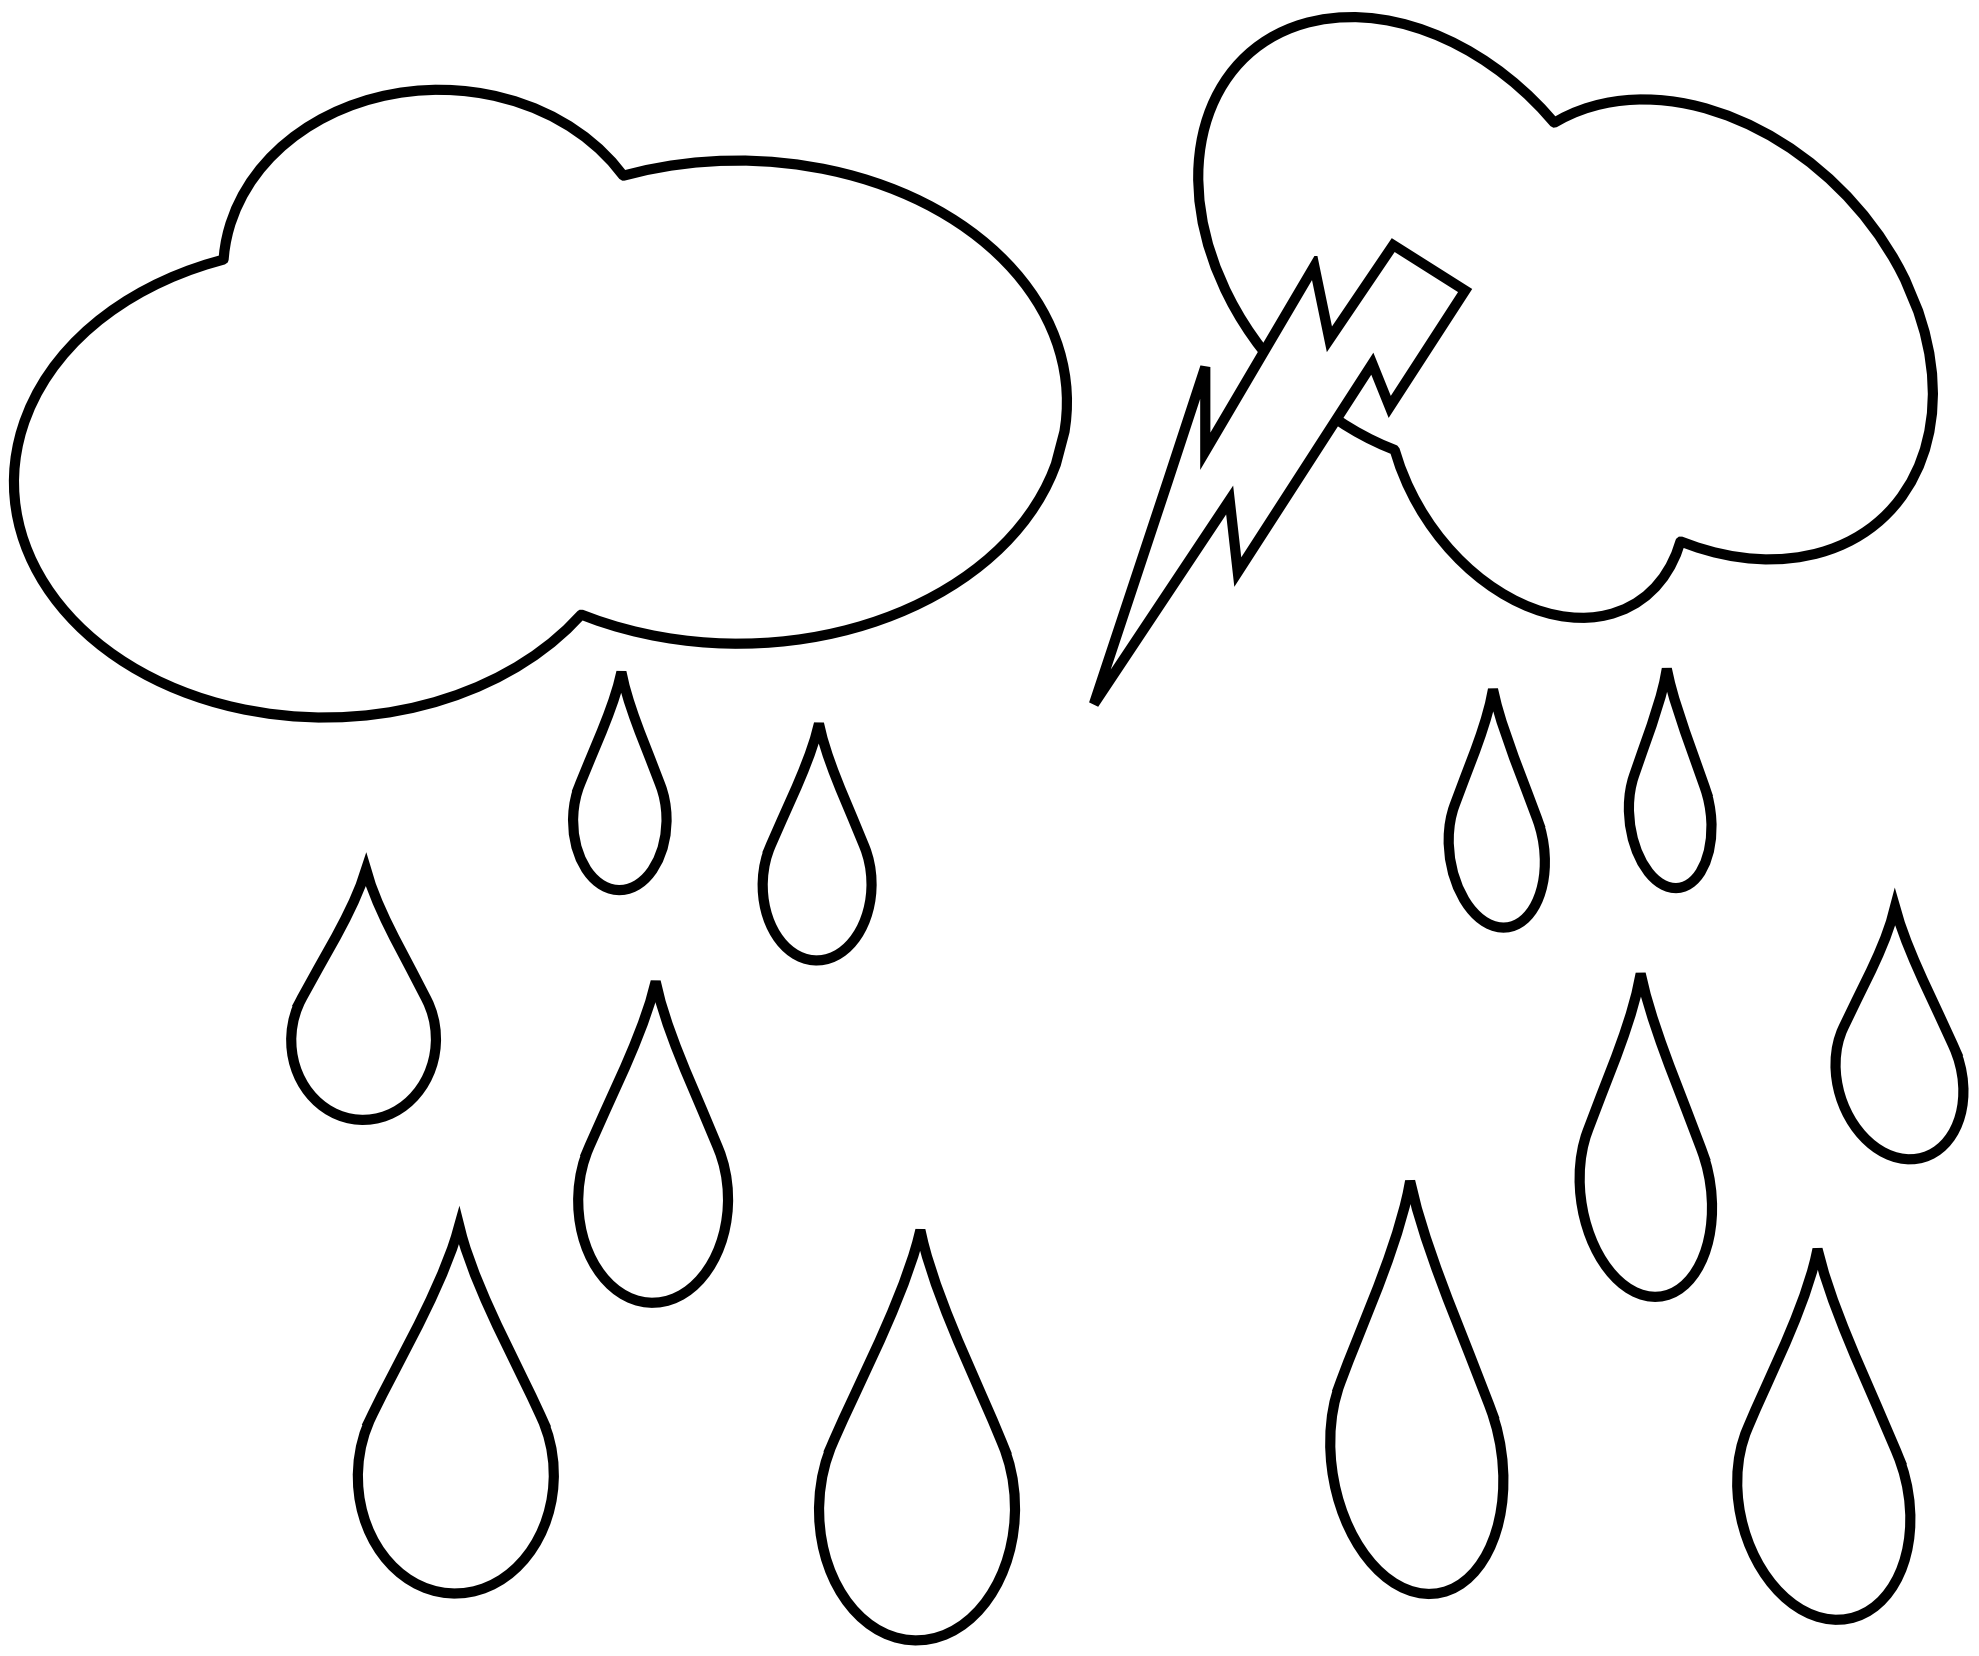 image black and white download Partly cloudy panda free. Cloud clipart black and white